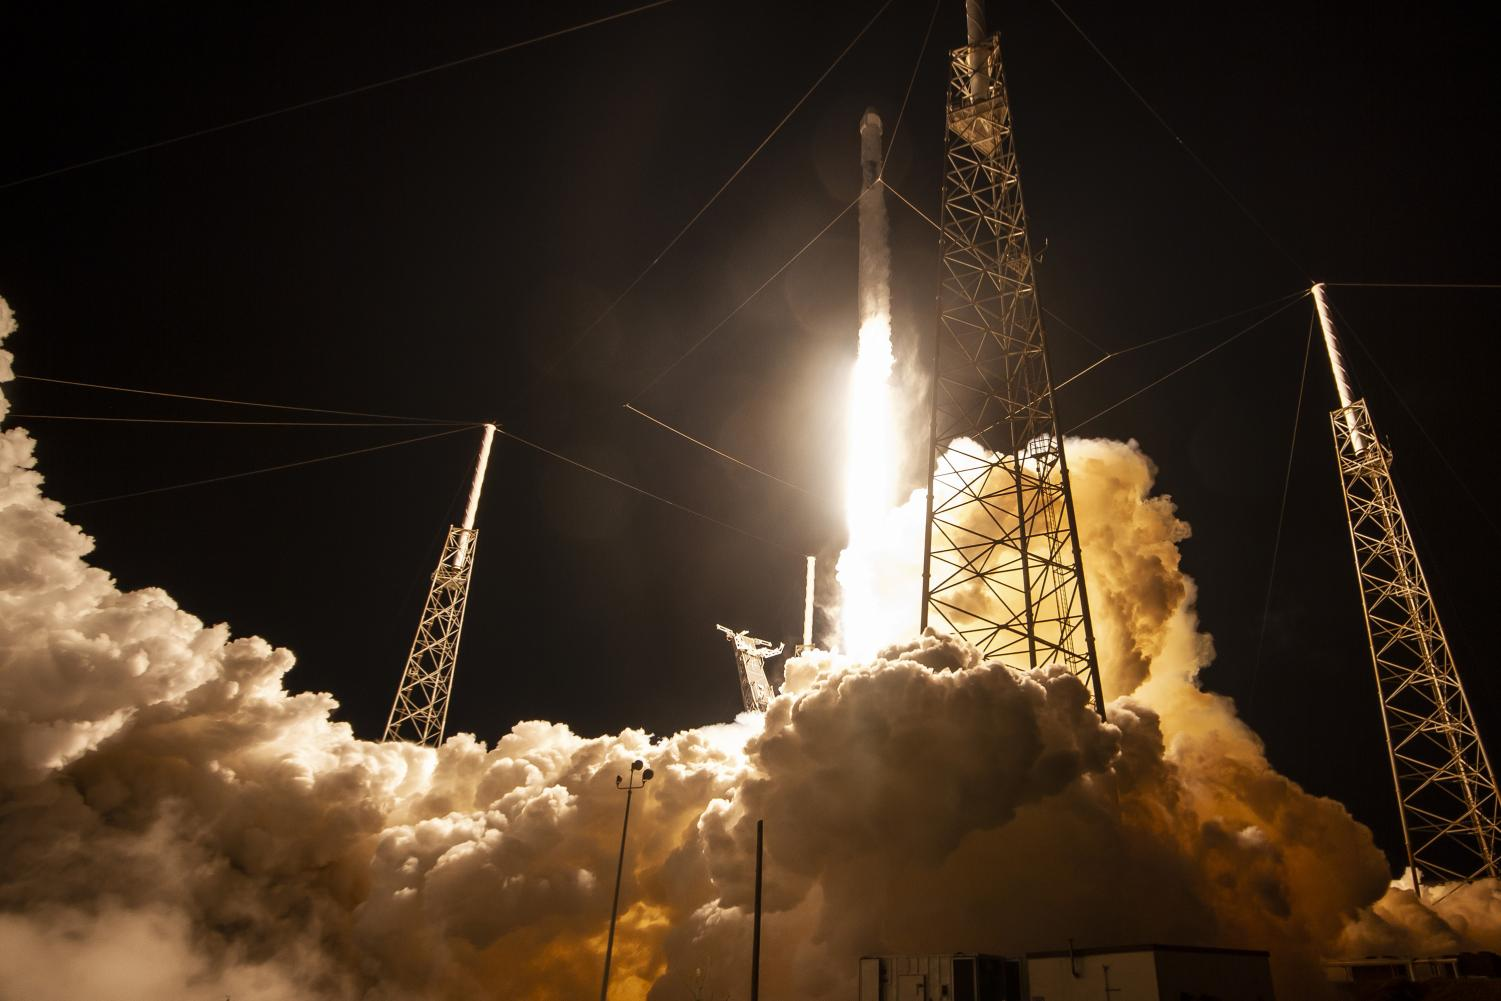 The launch on May 4 in which SpaceX sent the Dragon spacecraft to deliver important supplies to the International Space Station on the Falcon 9 rocket.